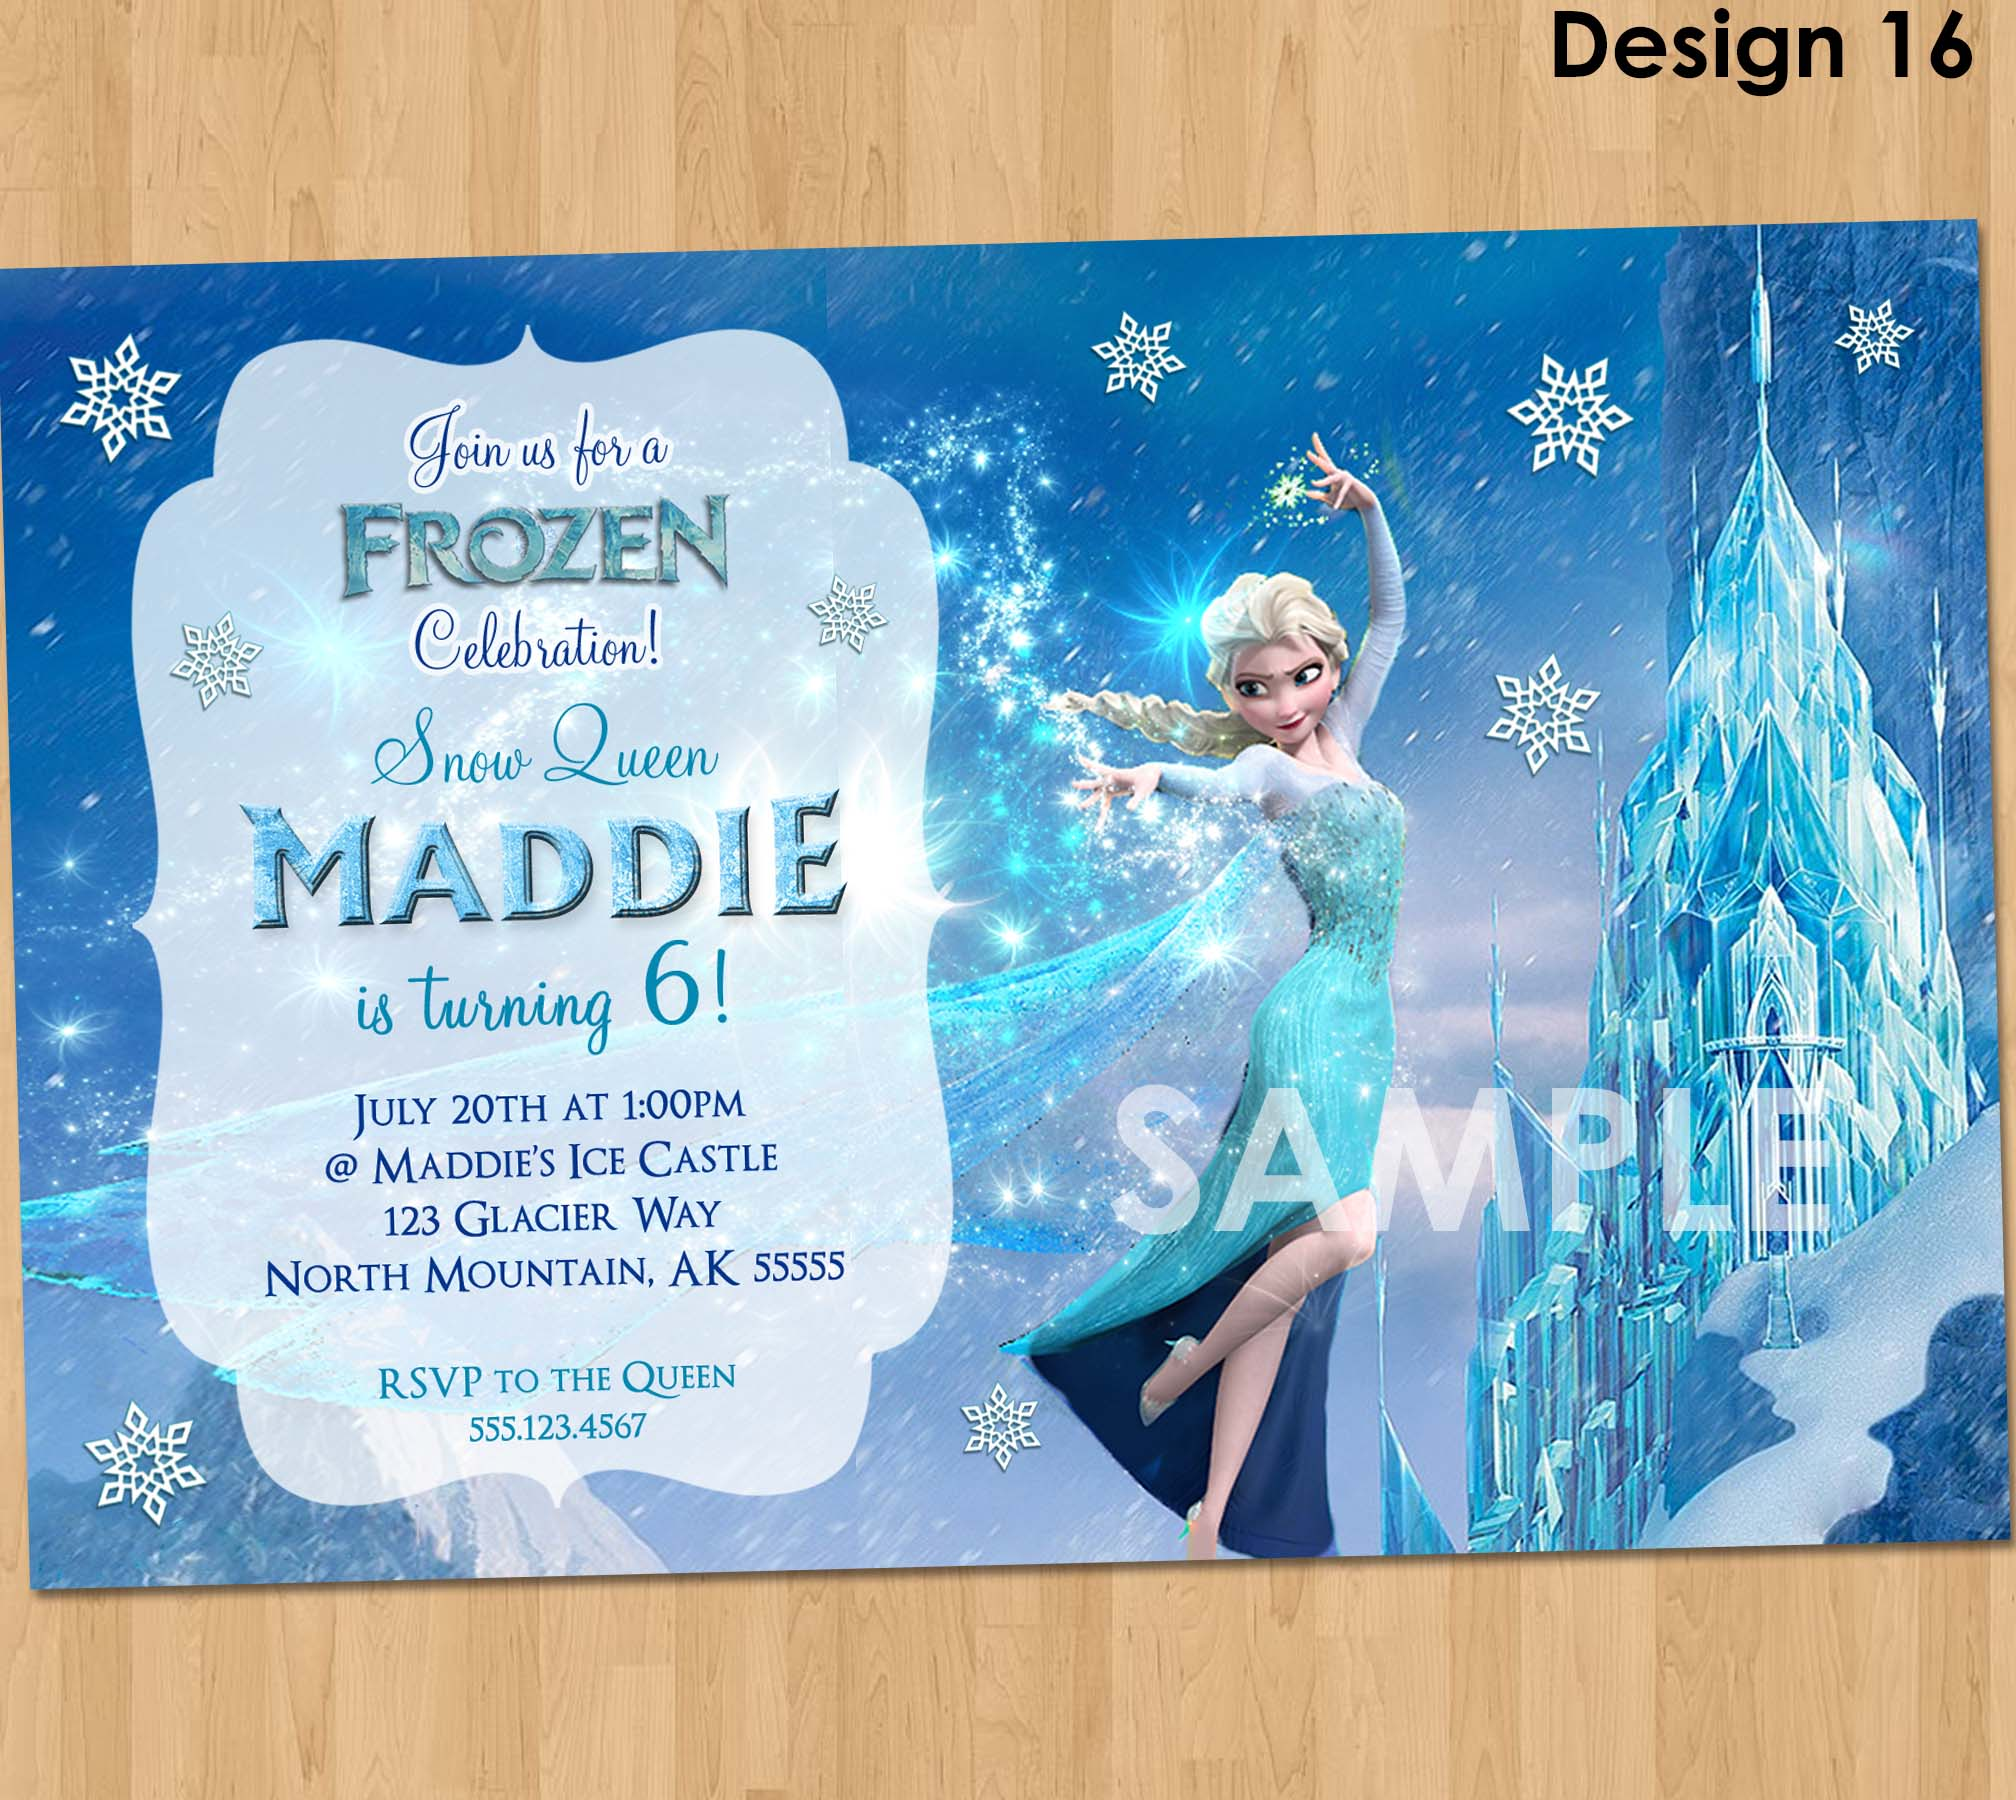 photo relating to Frozen Invitations Printable titled Elsa Frozen Invitation - Frozen Birthday Invitation - Disney Frozen Birthday Invitation - Frozen Celebration Guidelines Printable Elsa Snow Queen